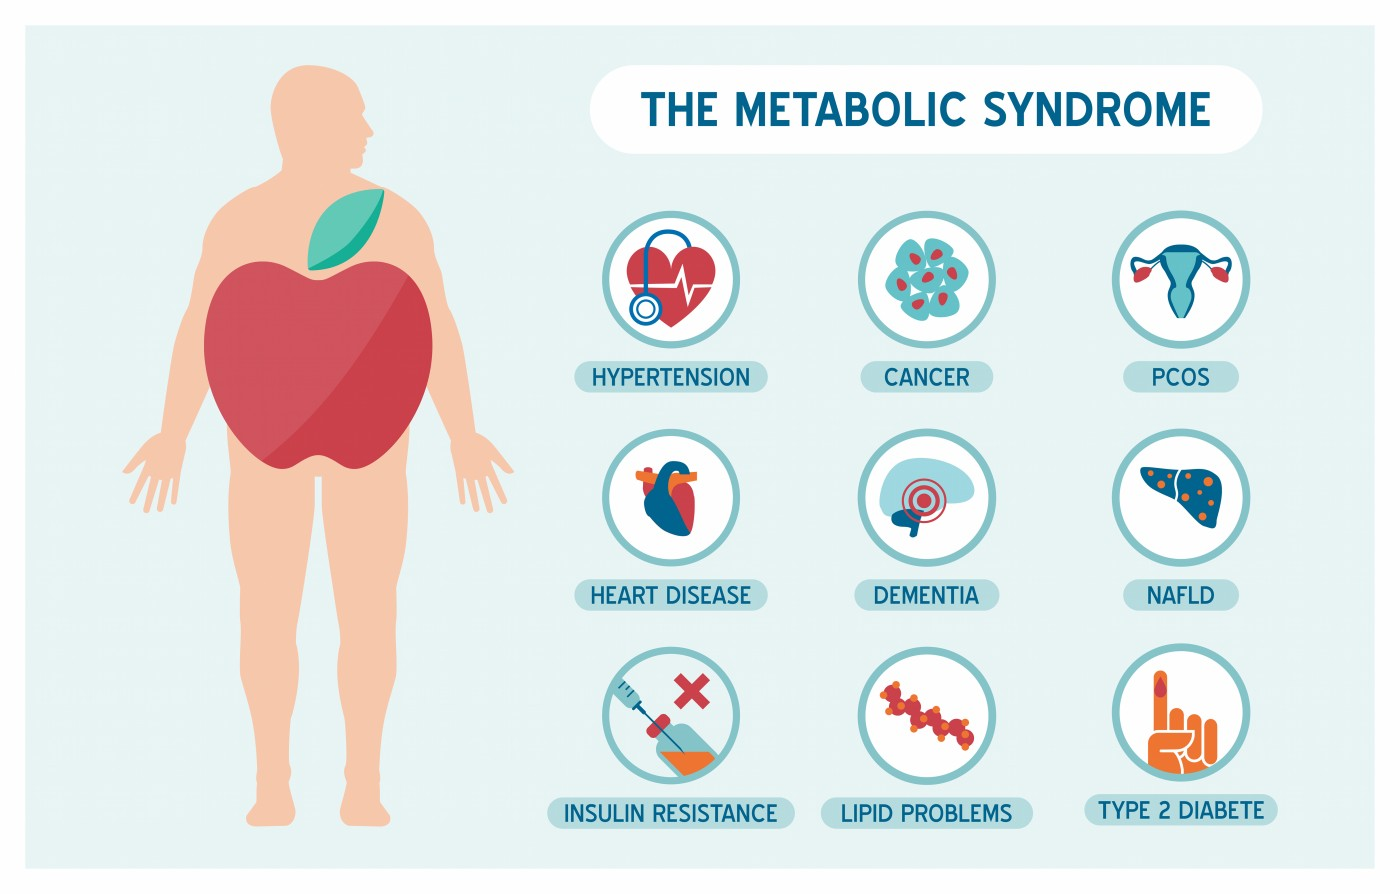 metablic syndrome Metabolic syndrome is a condition that includes various health issues it is linked to obesity, cardiovascular disease, high blood pressure, and type 2 diabetes lifestyle modification and control.